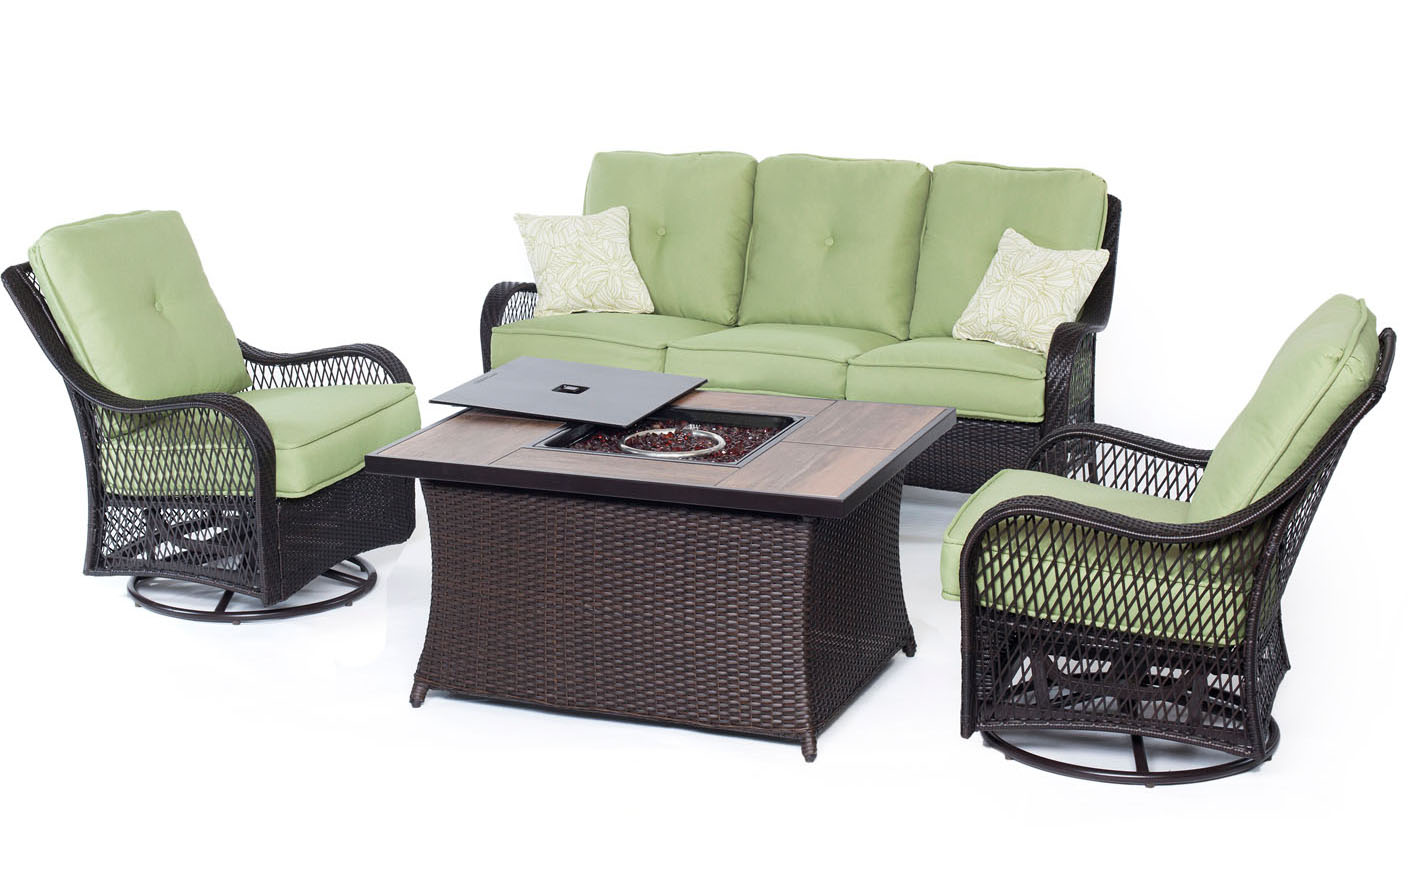 Hanover Orleans Avocado Green 4-Piece Fire Pit Outdoor Seating Patio Set